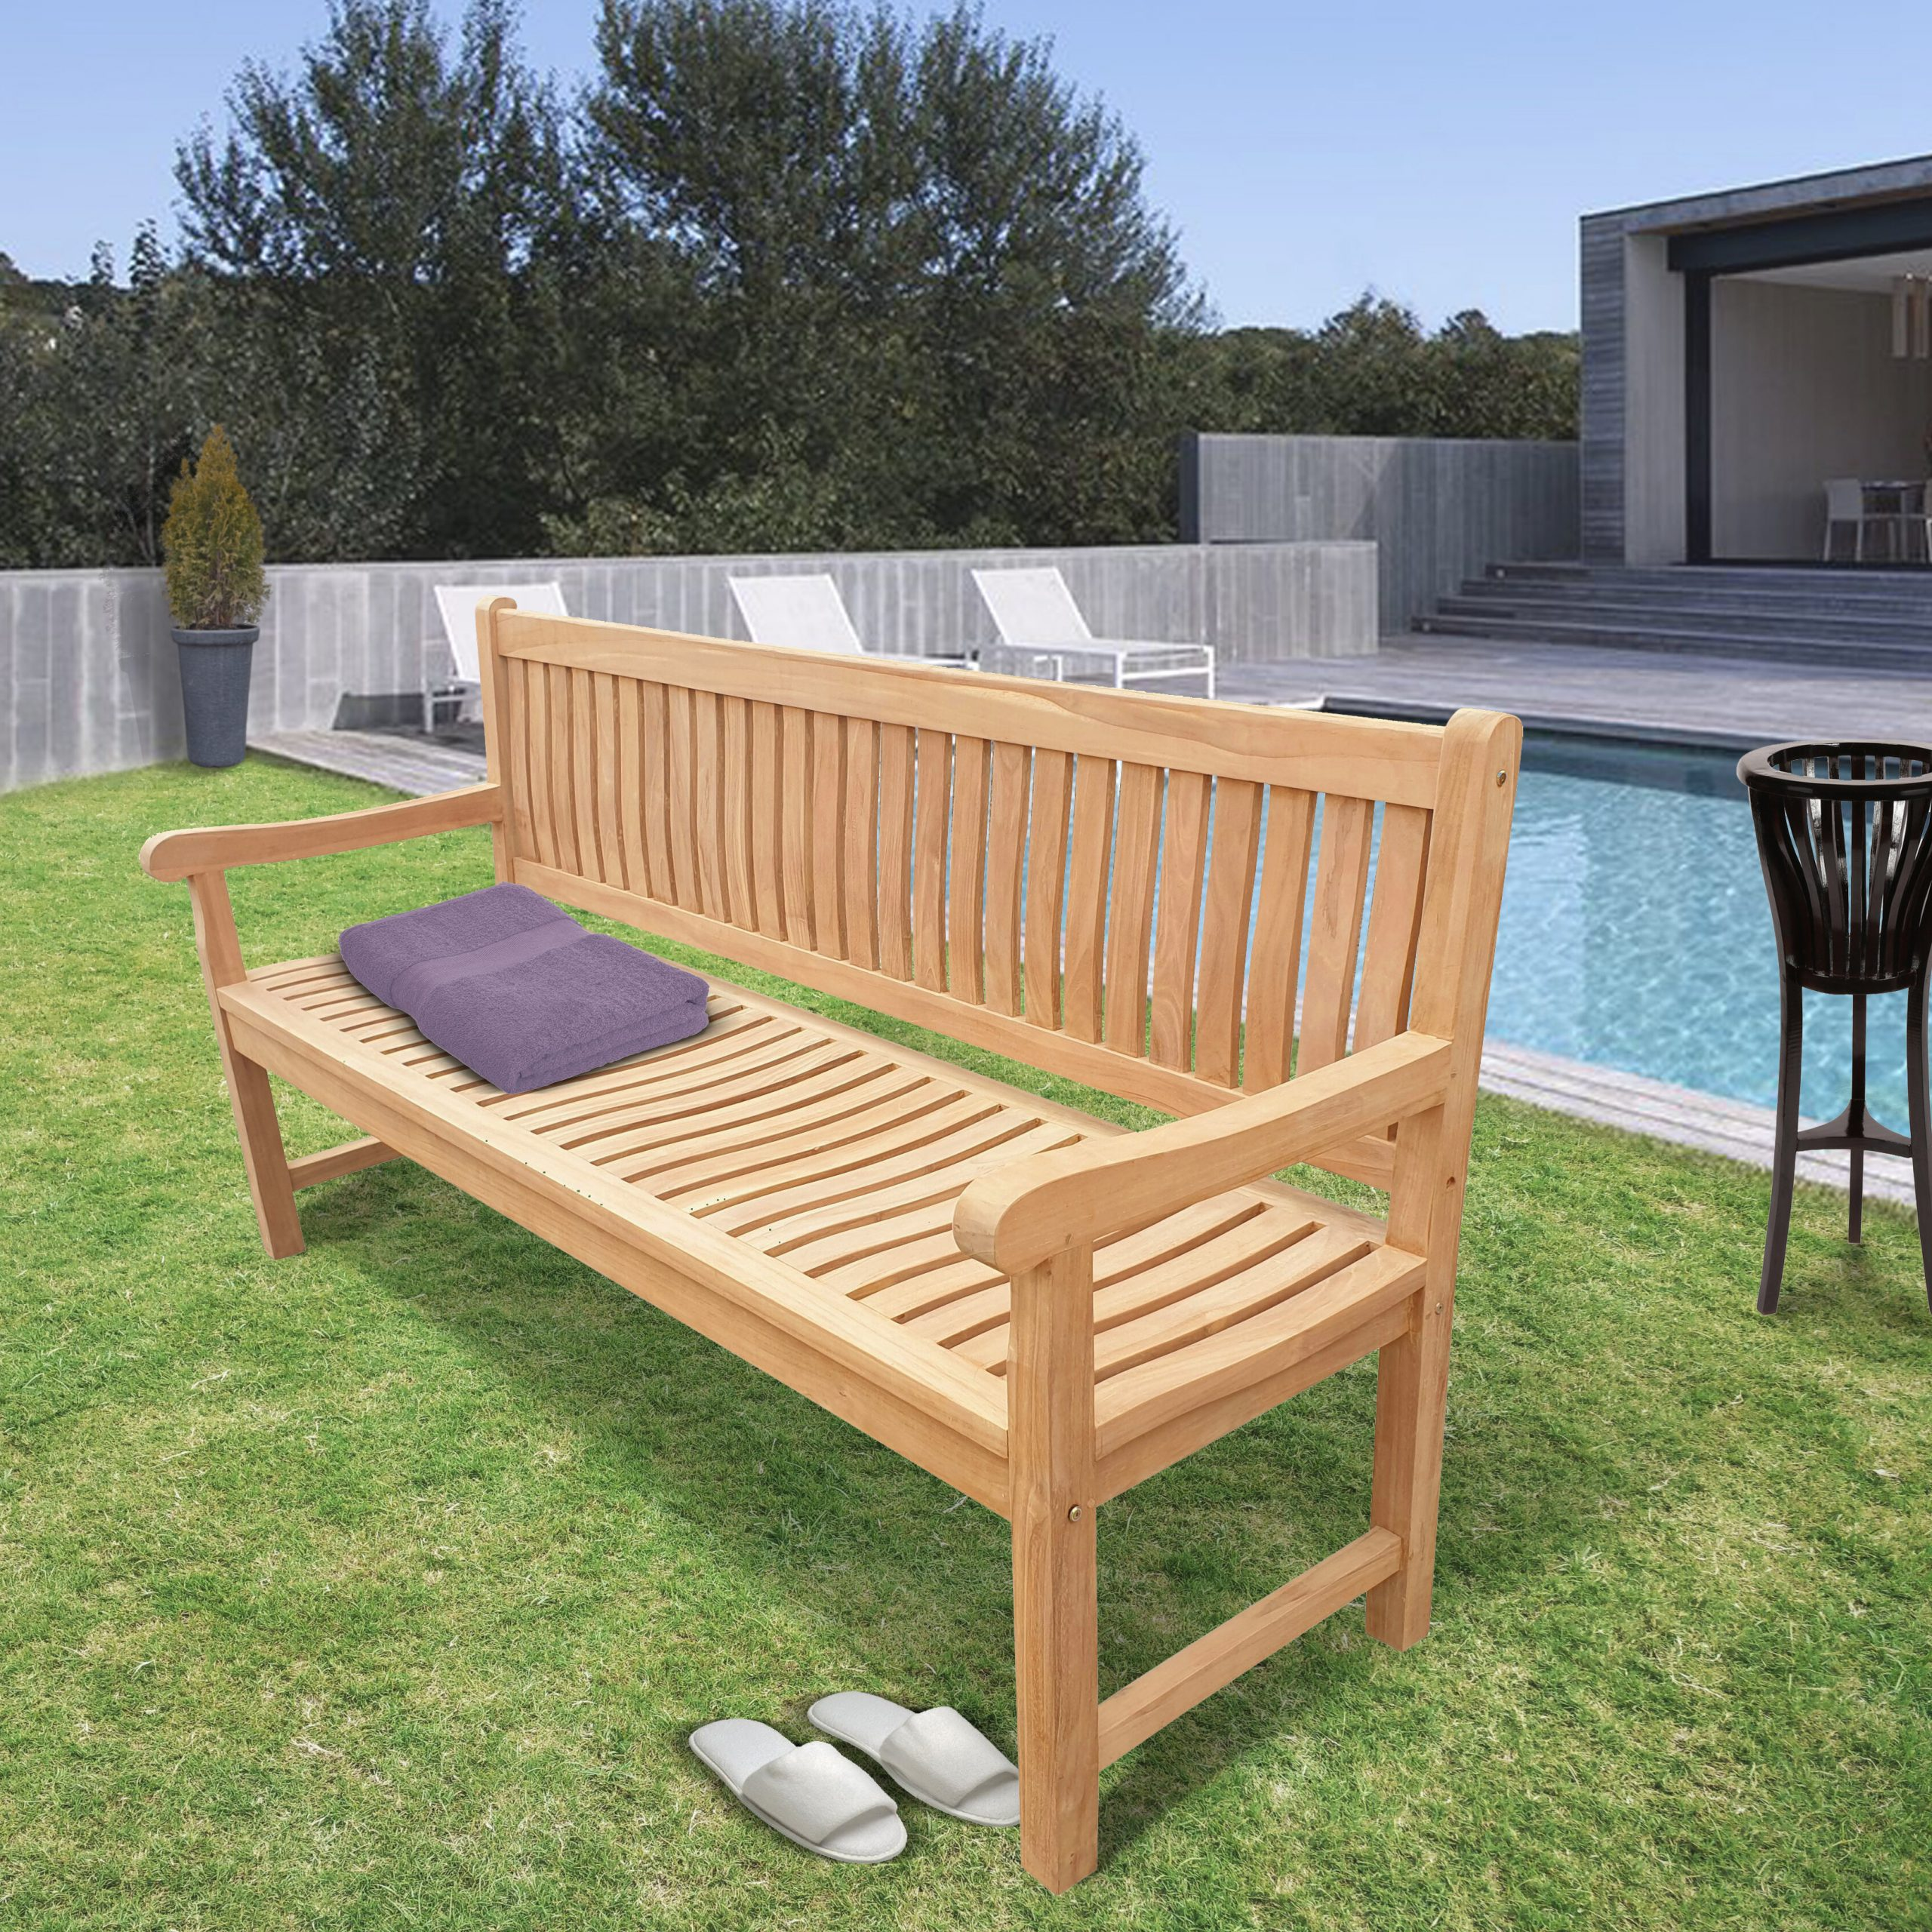 Wallie Teak Garden Benches Within Best And Newest Casson Teak Garden Bench (View 7 of 30)